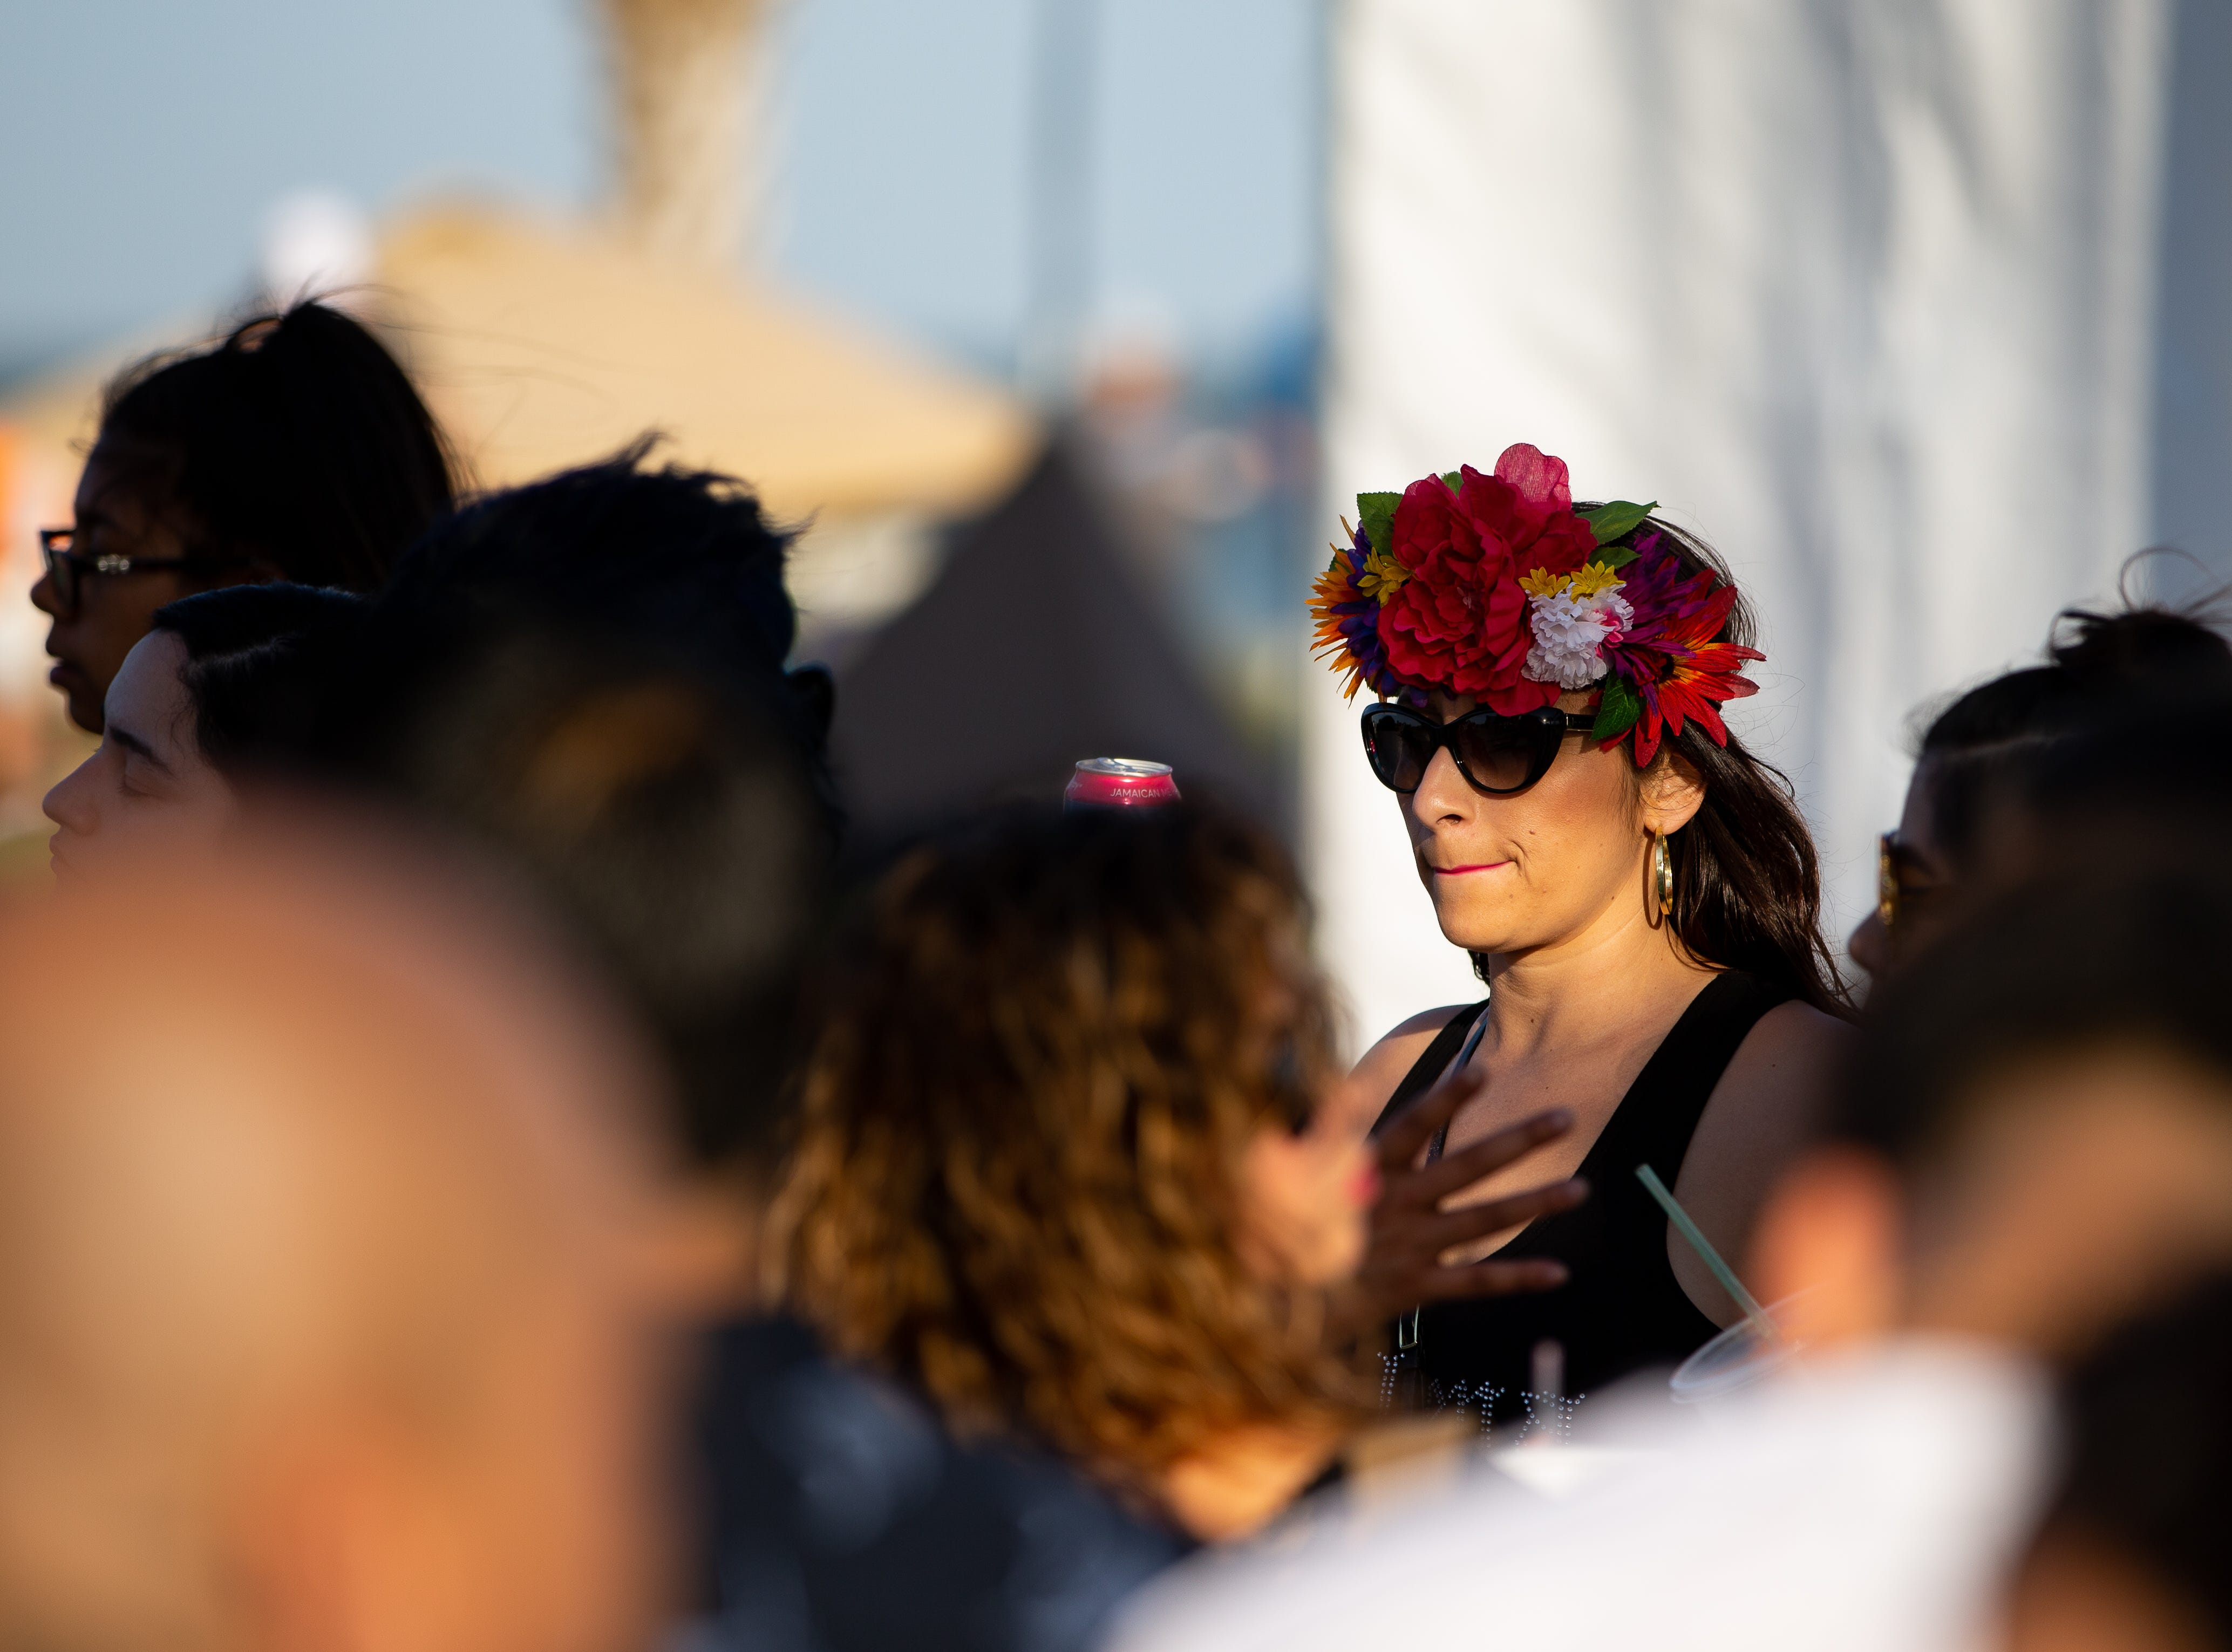 A women waits inline with a slower crown at the FDLF sign during the second say of Fiesta de la Flor on Saturday, April 13, 2019.